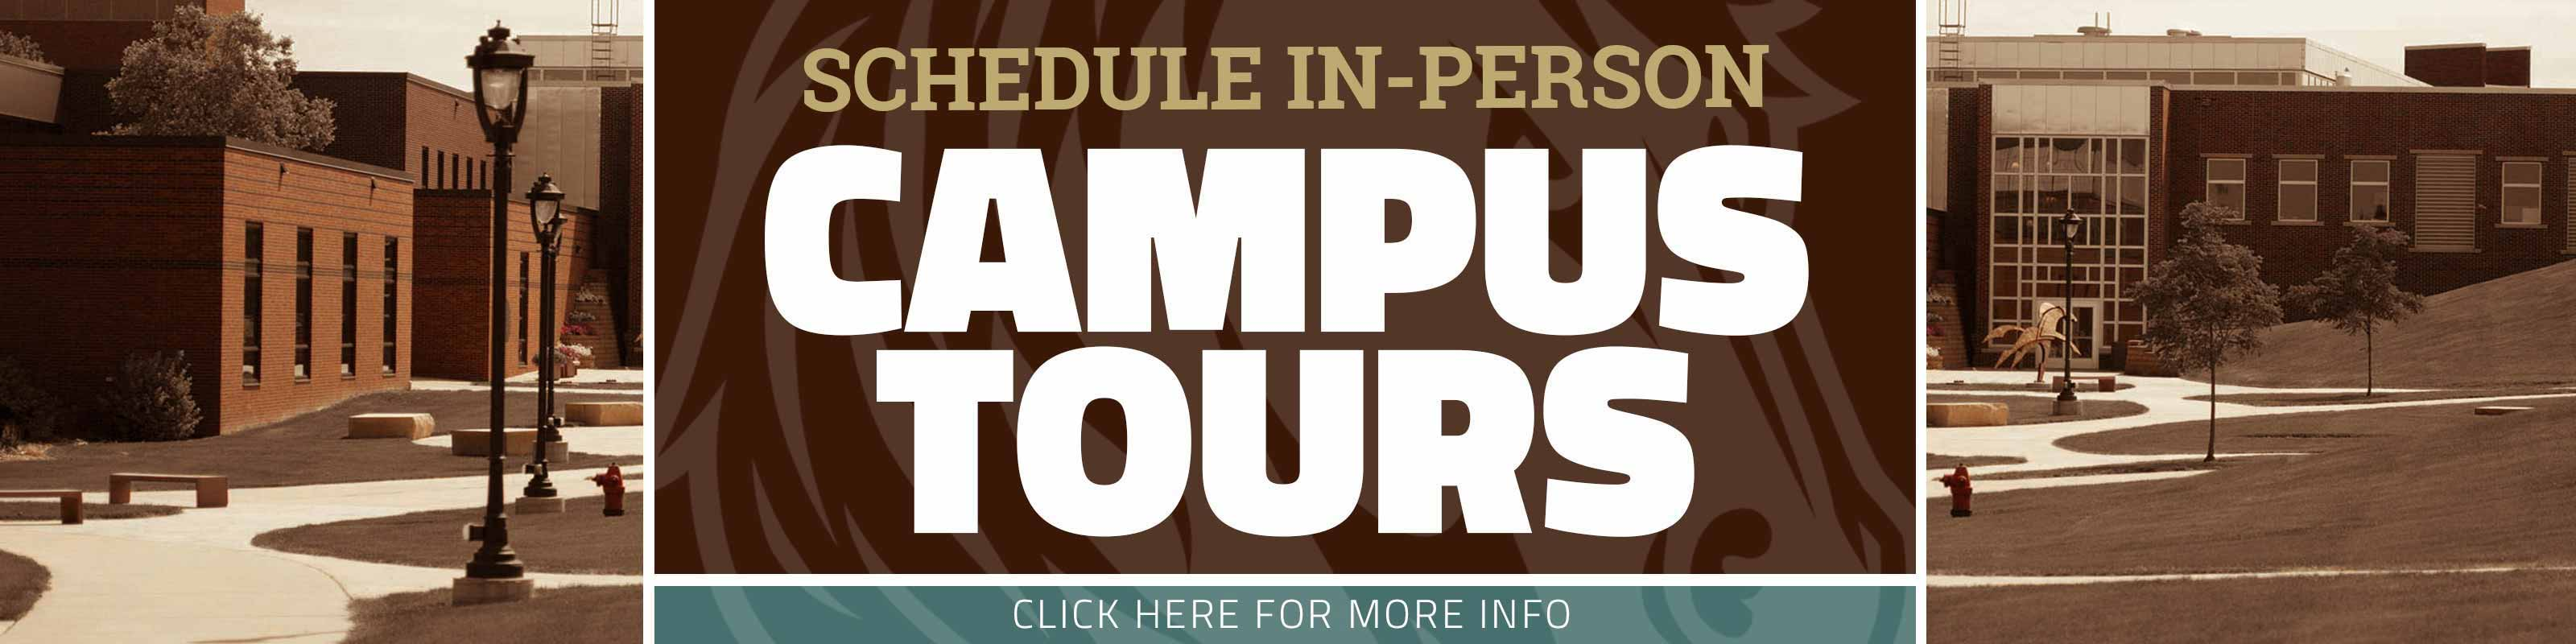 Schedule In-Person Campus Tours - Click Here for More Info